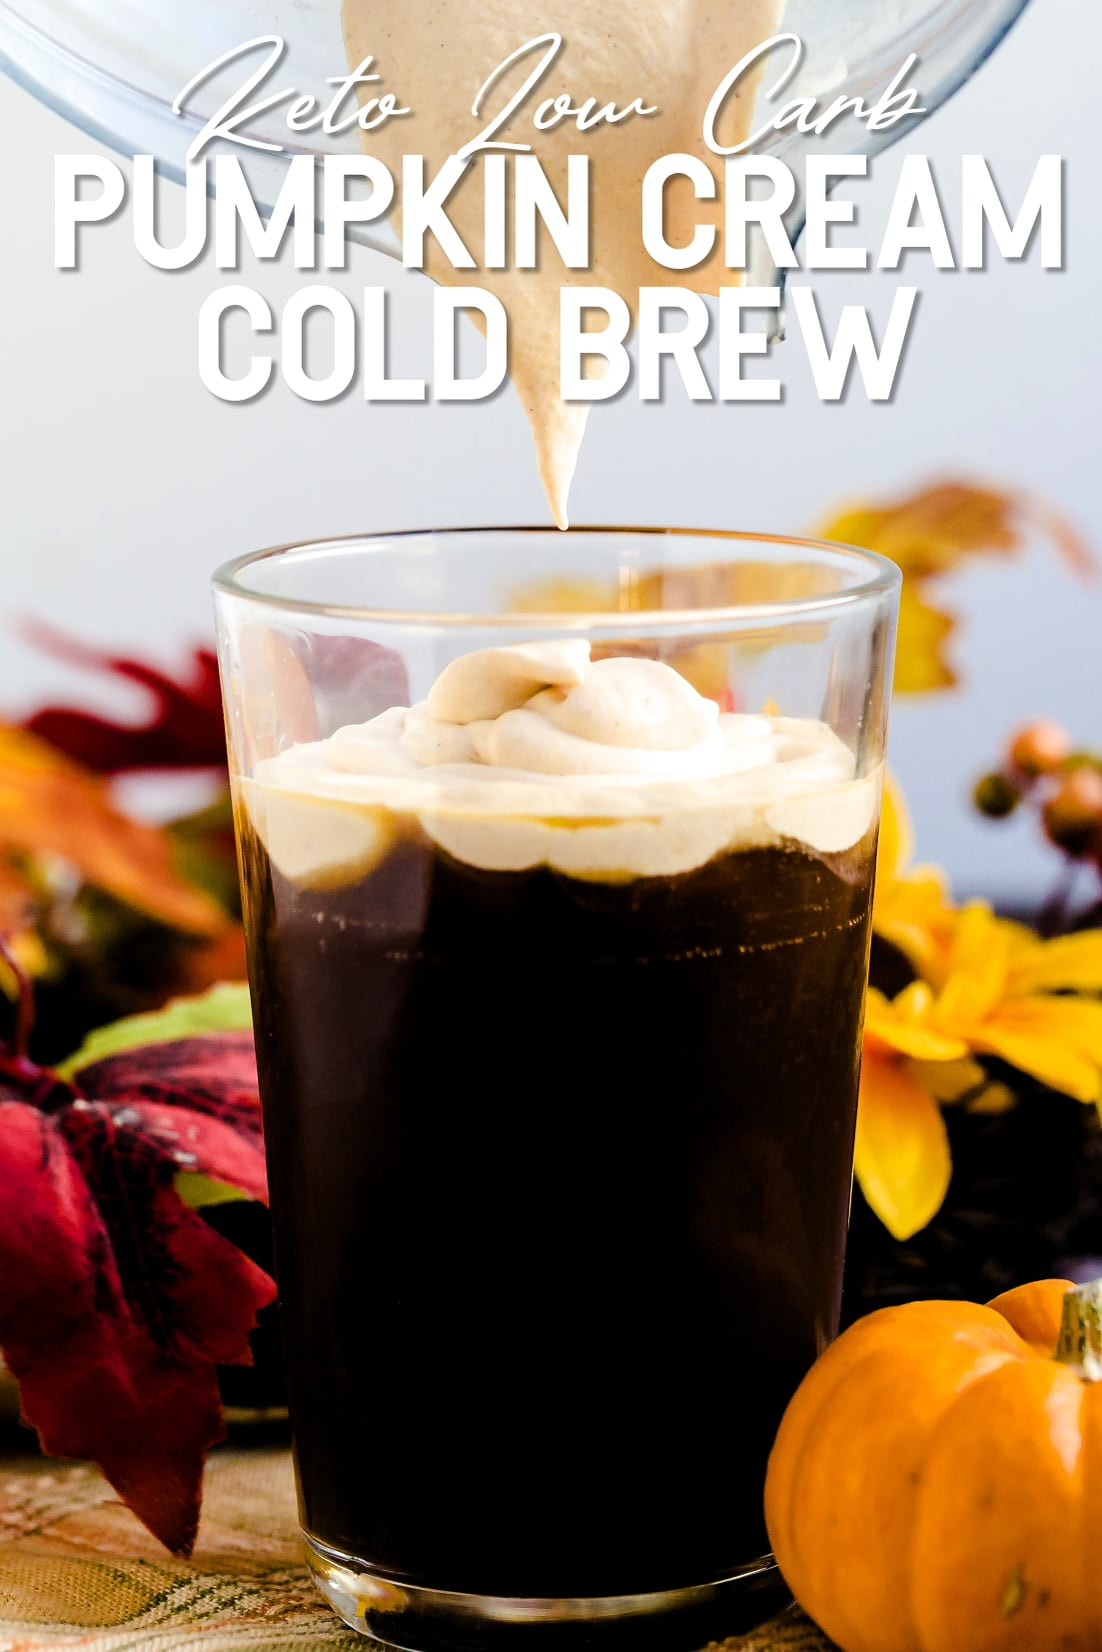 Keto Pumpkin Cream being poured on top of iced coffee